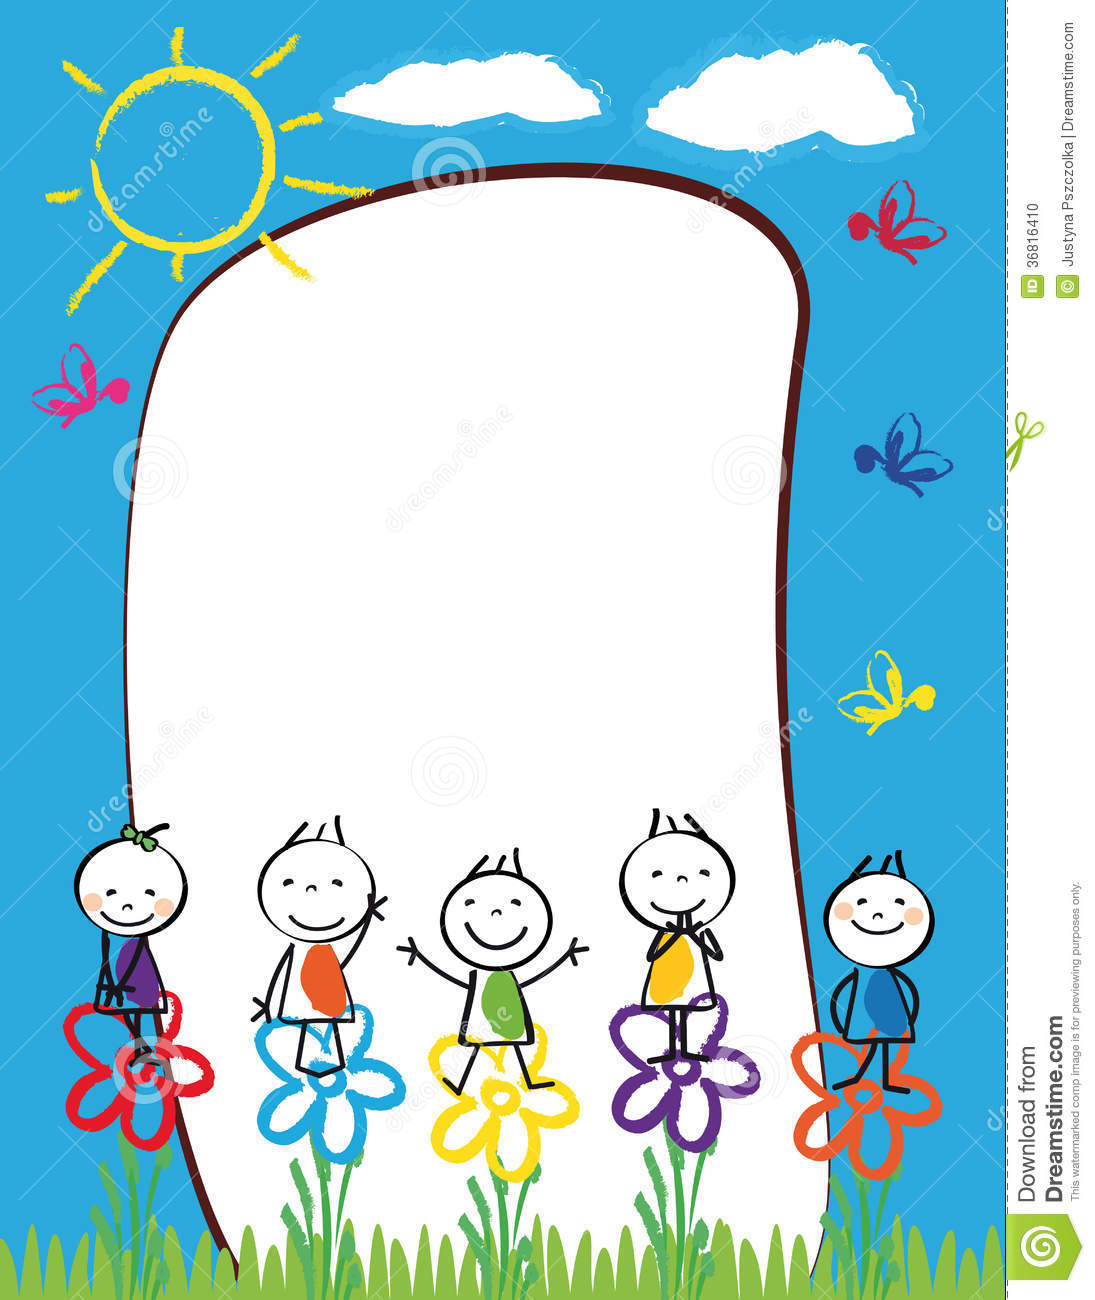 Kids Frame Stock Vector Image Of Icon Border Cute